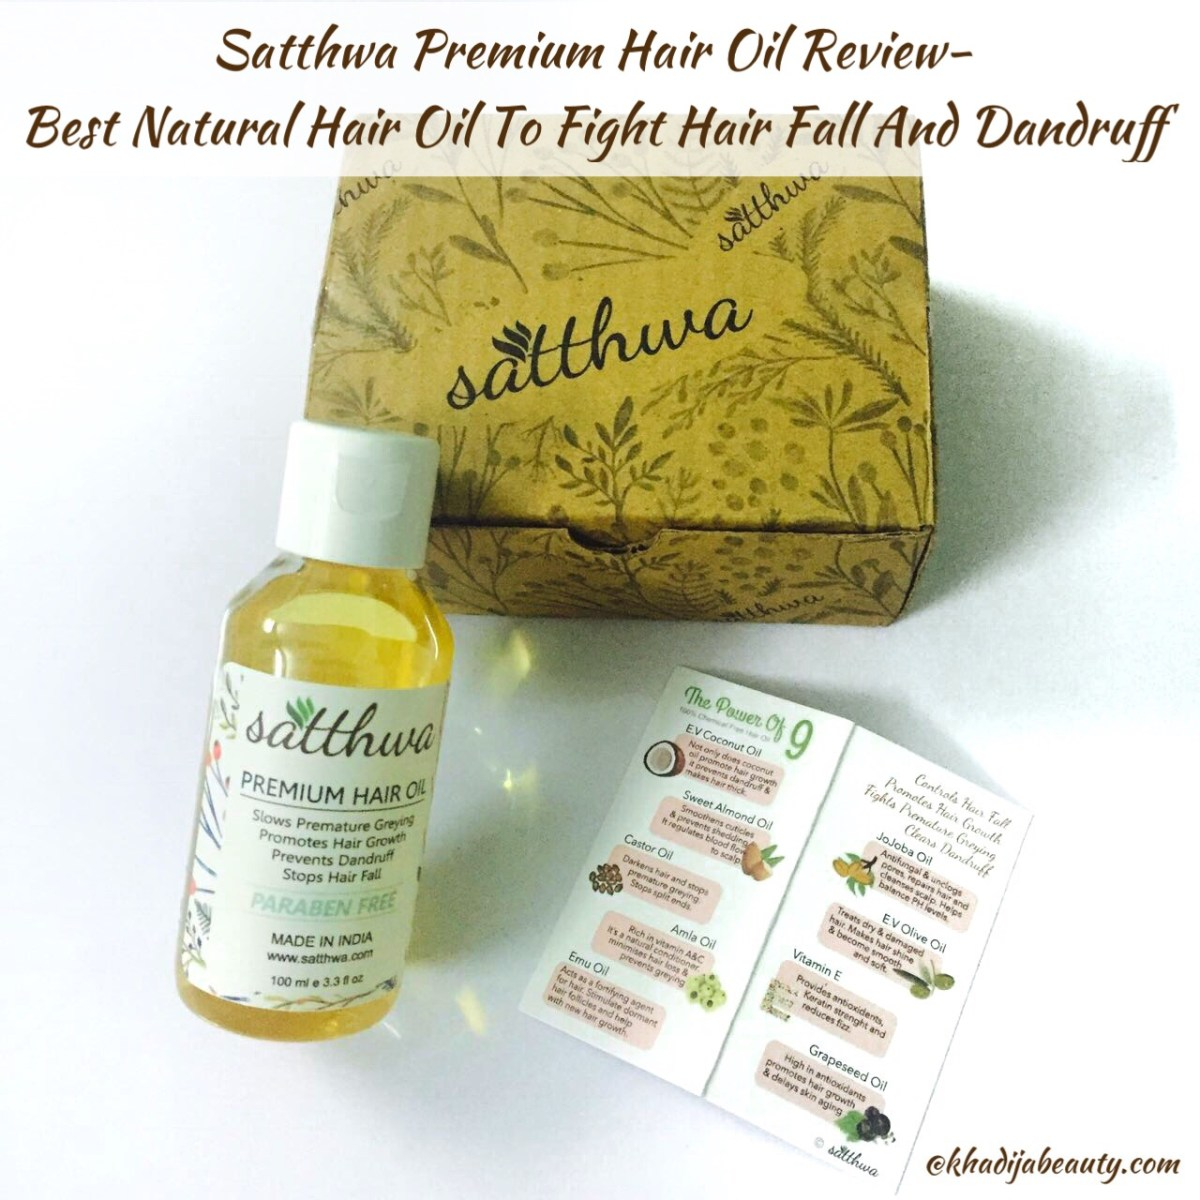 Satthwa Premium Hair Oil Review| Best hair oil for hair fall and dandruff